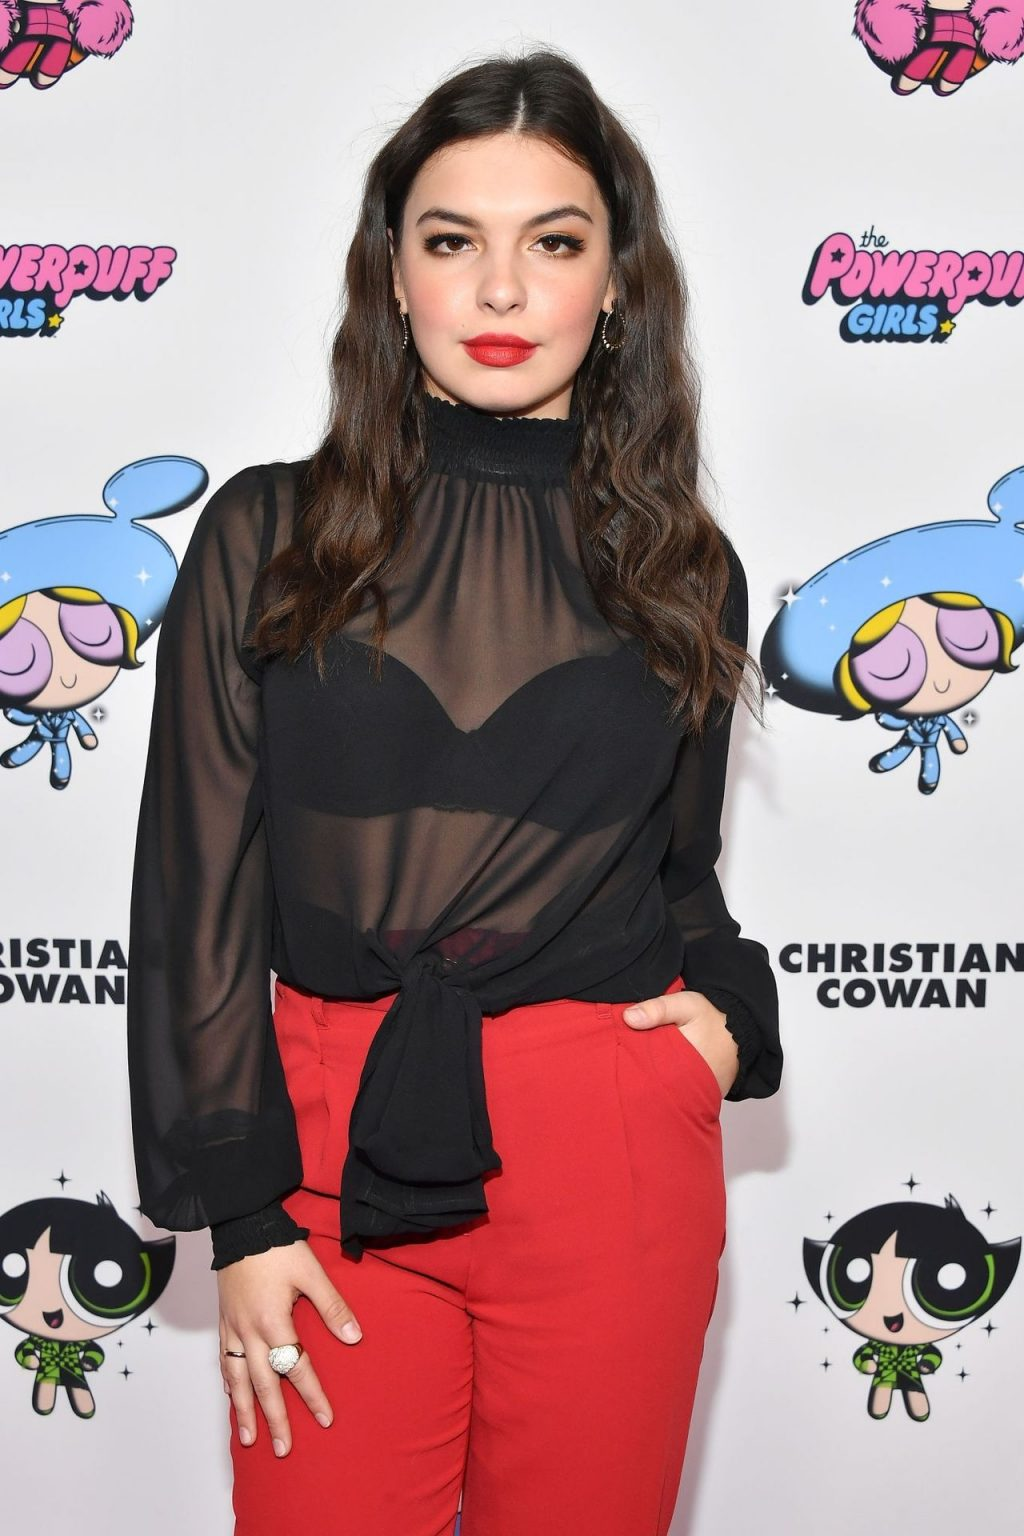 Isabella Gomez Looks Hot at the 2020 Christian Cowan x Powerpuff Girls Runway Show (19 Photos)